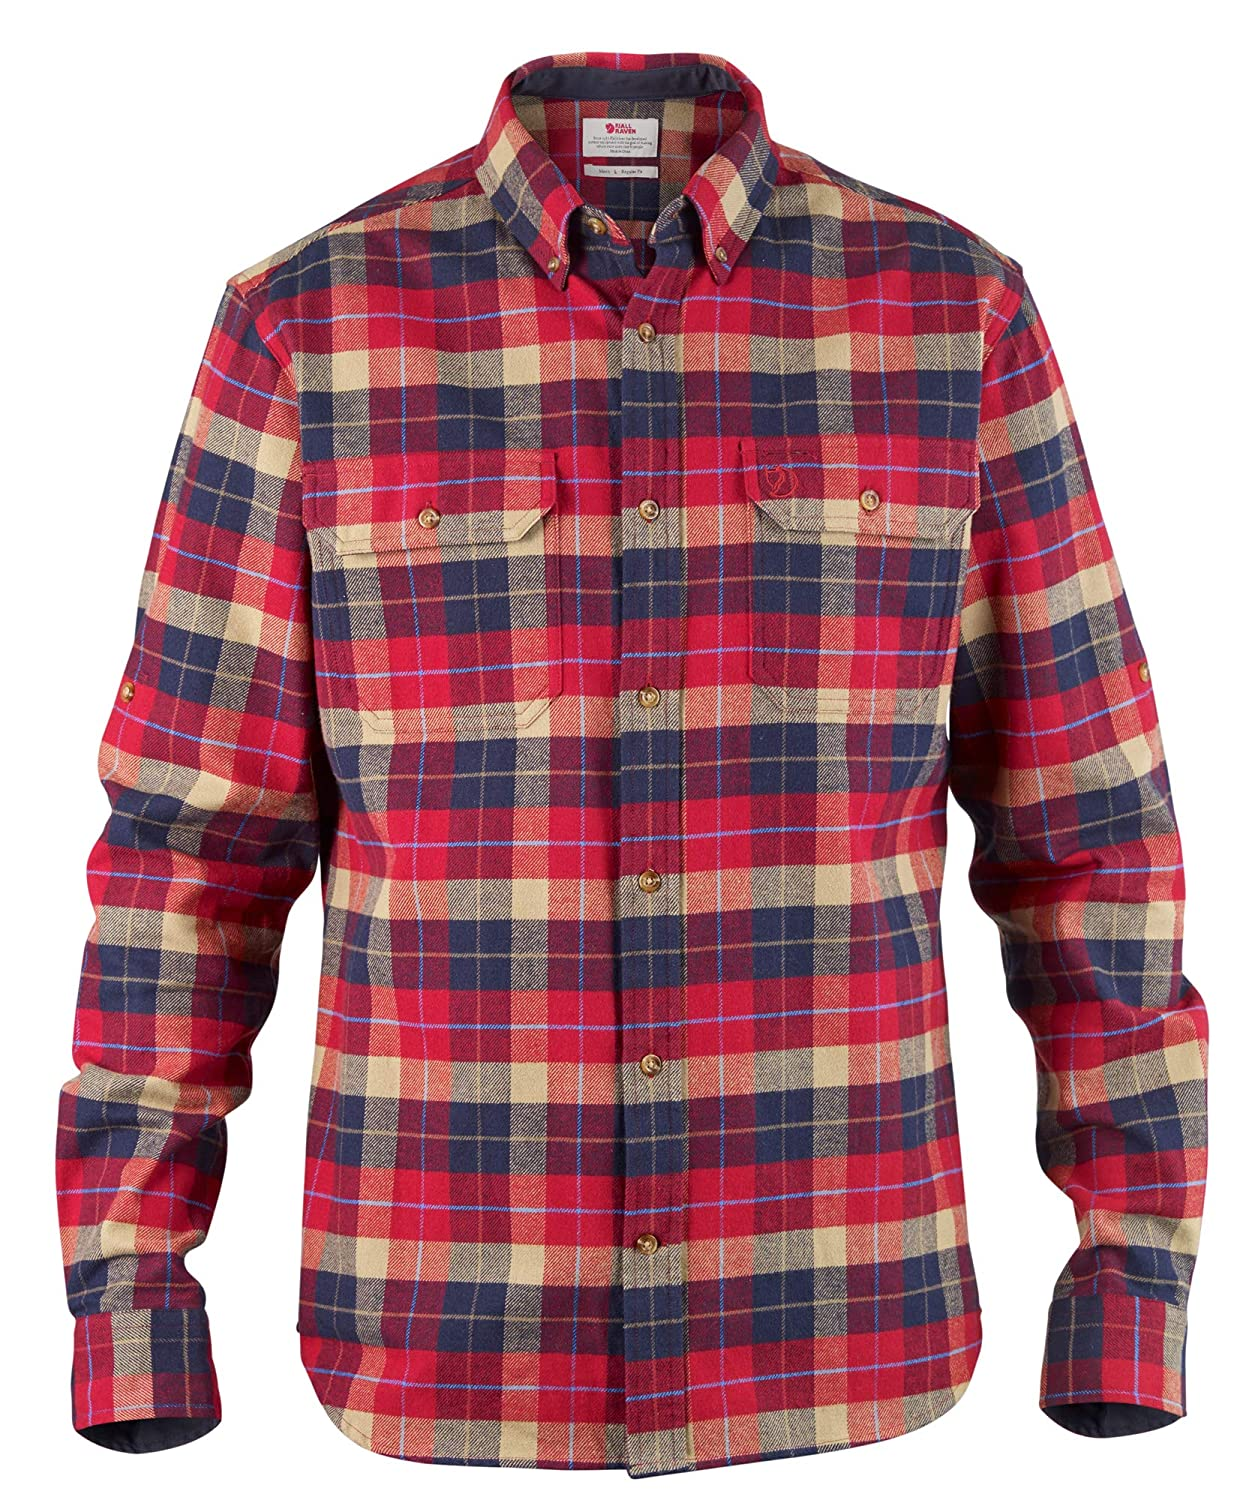 Fjallraven Singi Heavy Flannel Shirt M Long Sleeved T, Hombre, Deep Red, XXL: Amazon.es: Deportes y aire libre